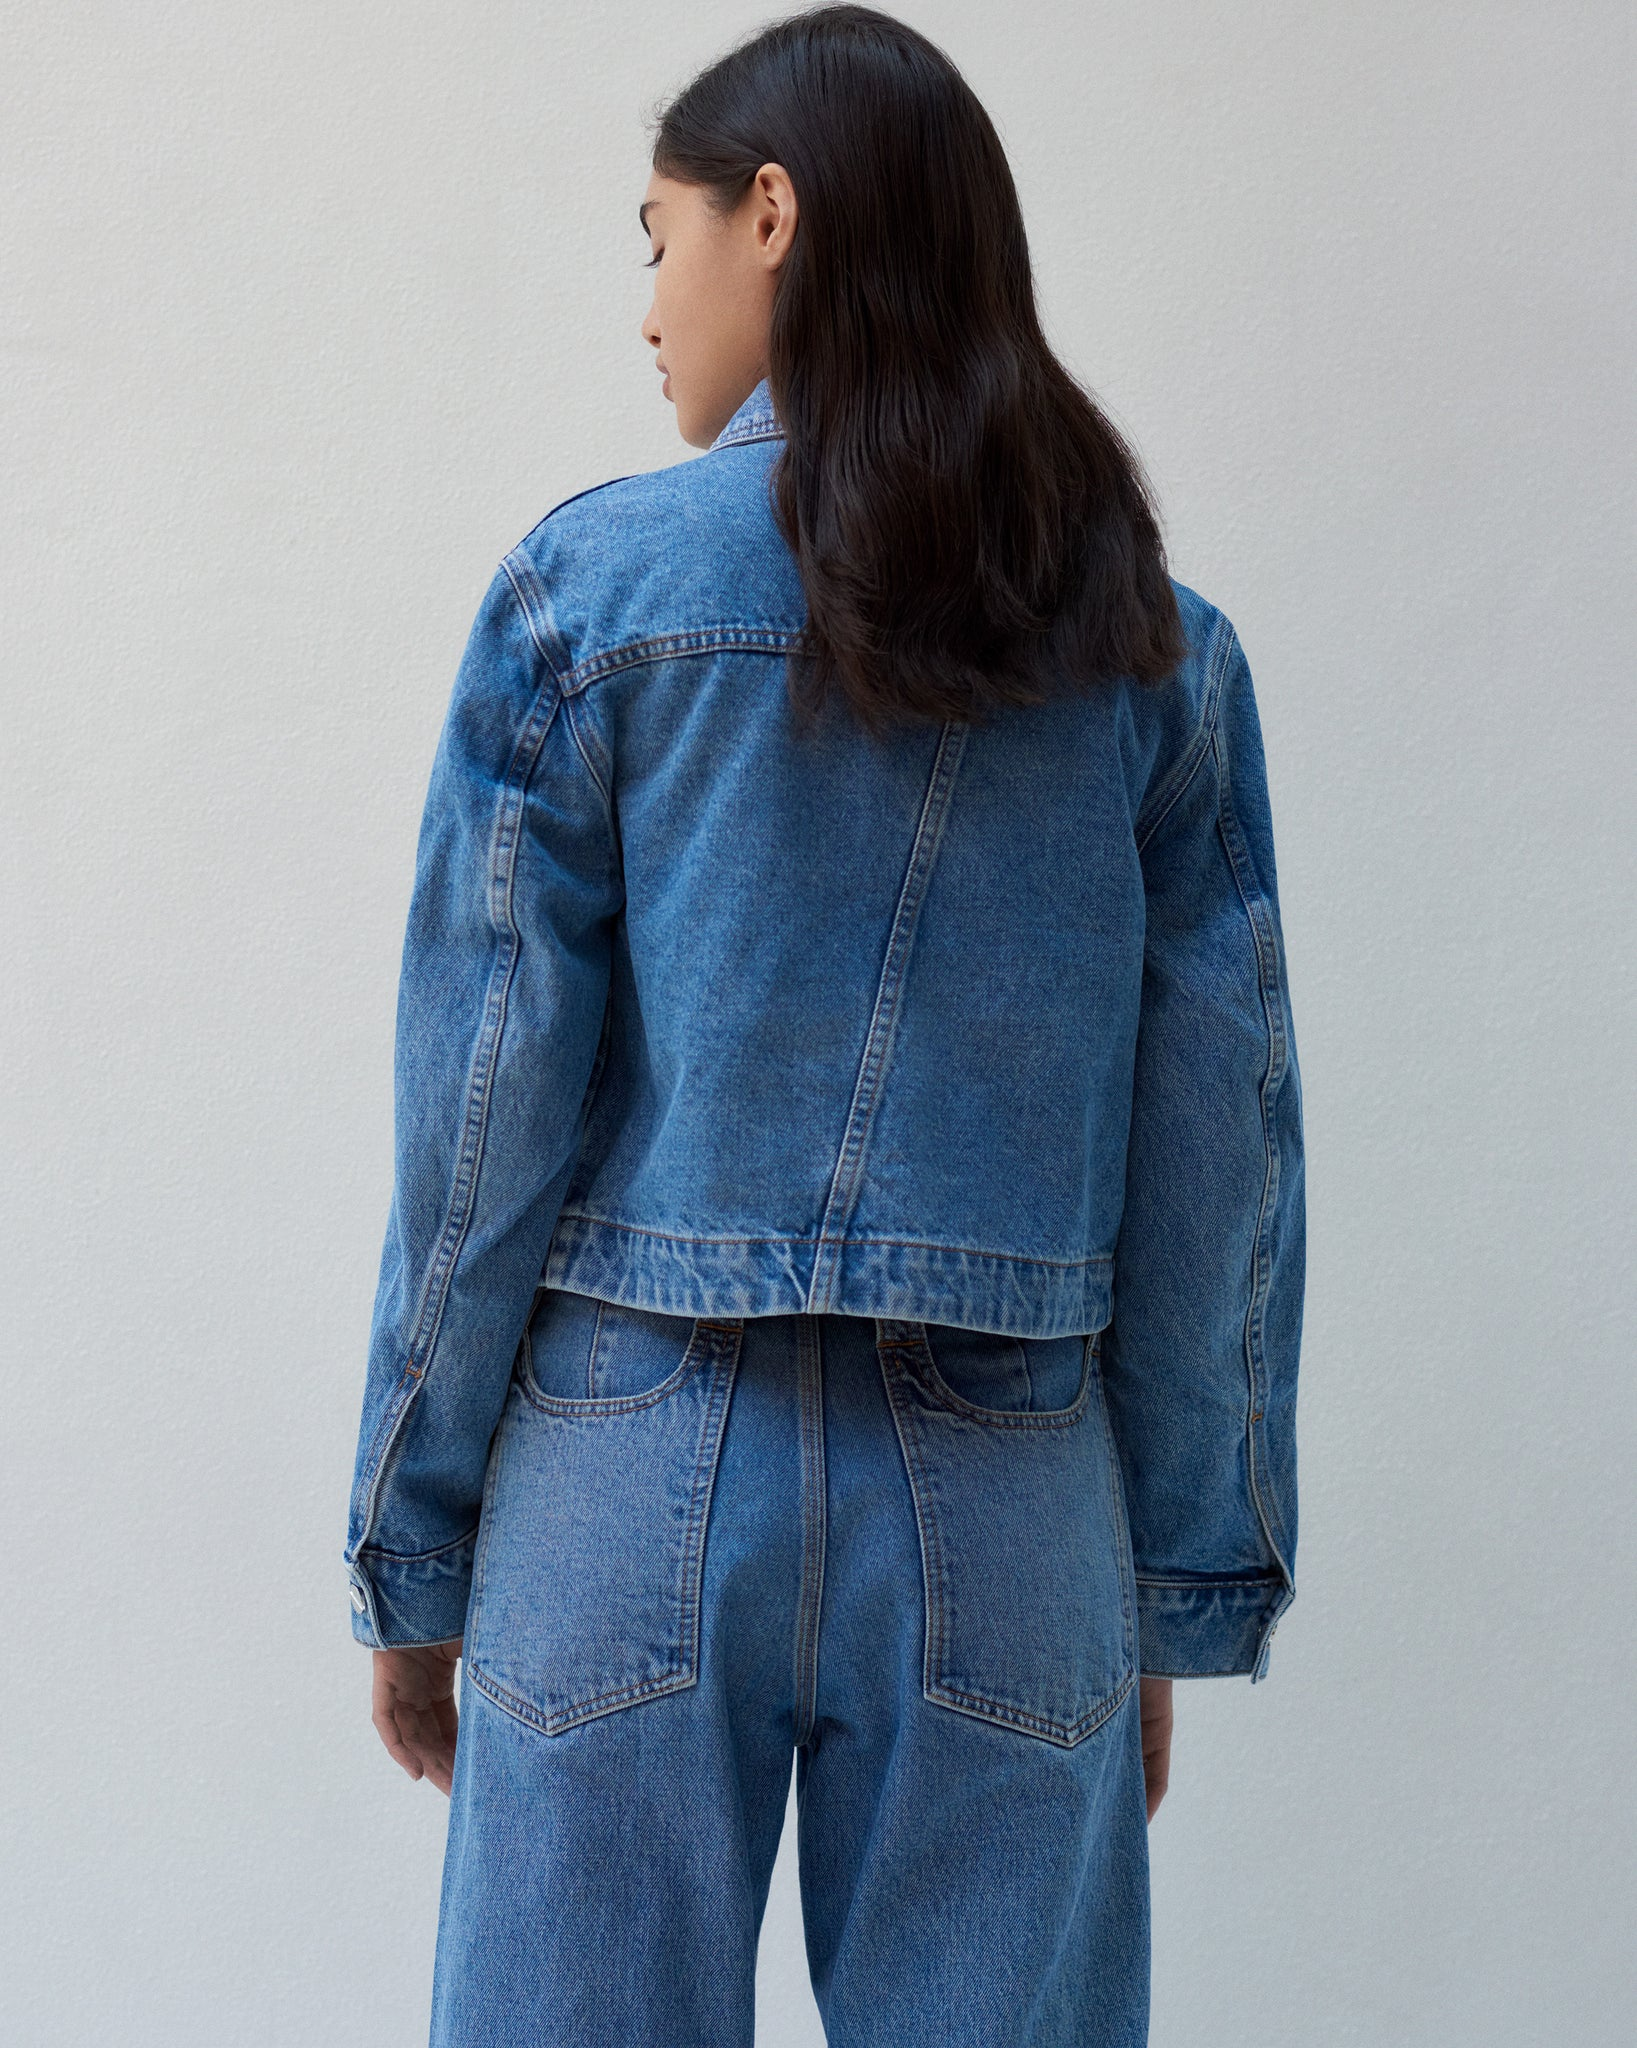 TRUCKER JACKET IN CLASSIC DENIM